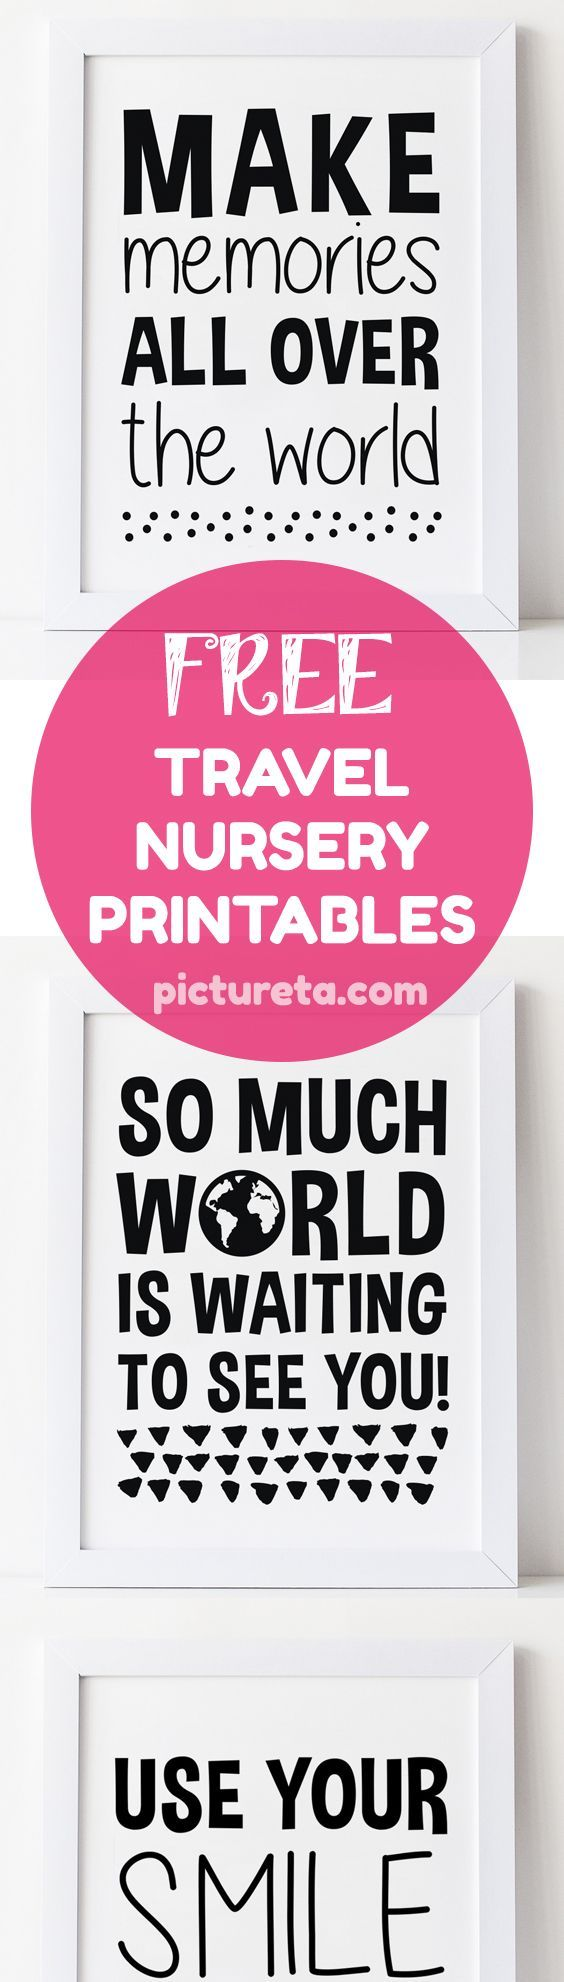 Free Kids Printables by Pictureta.com